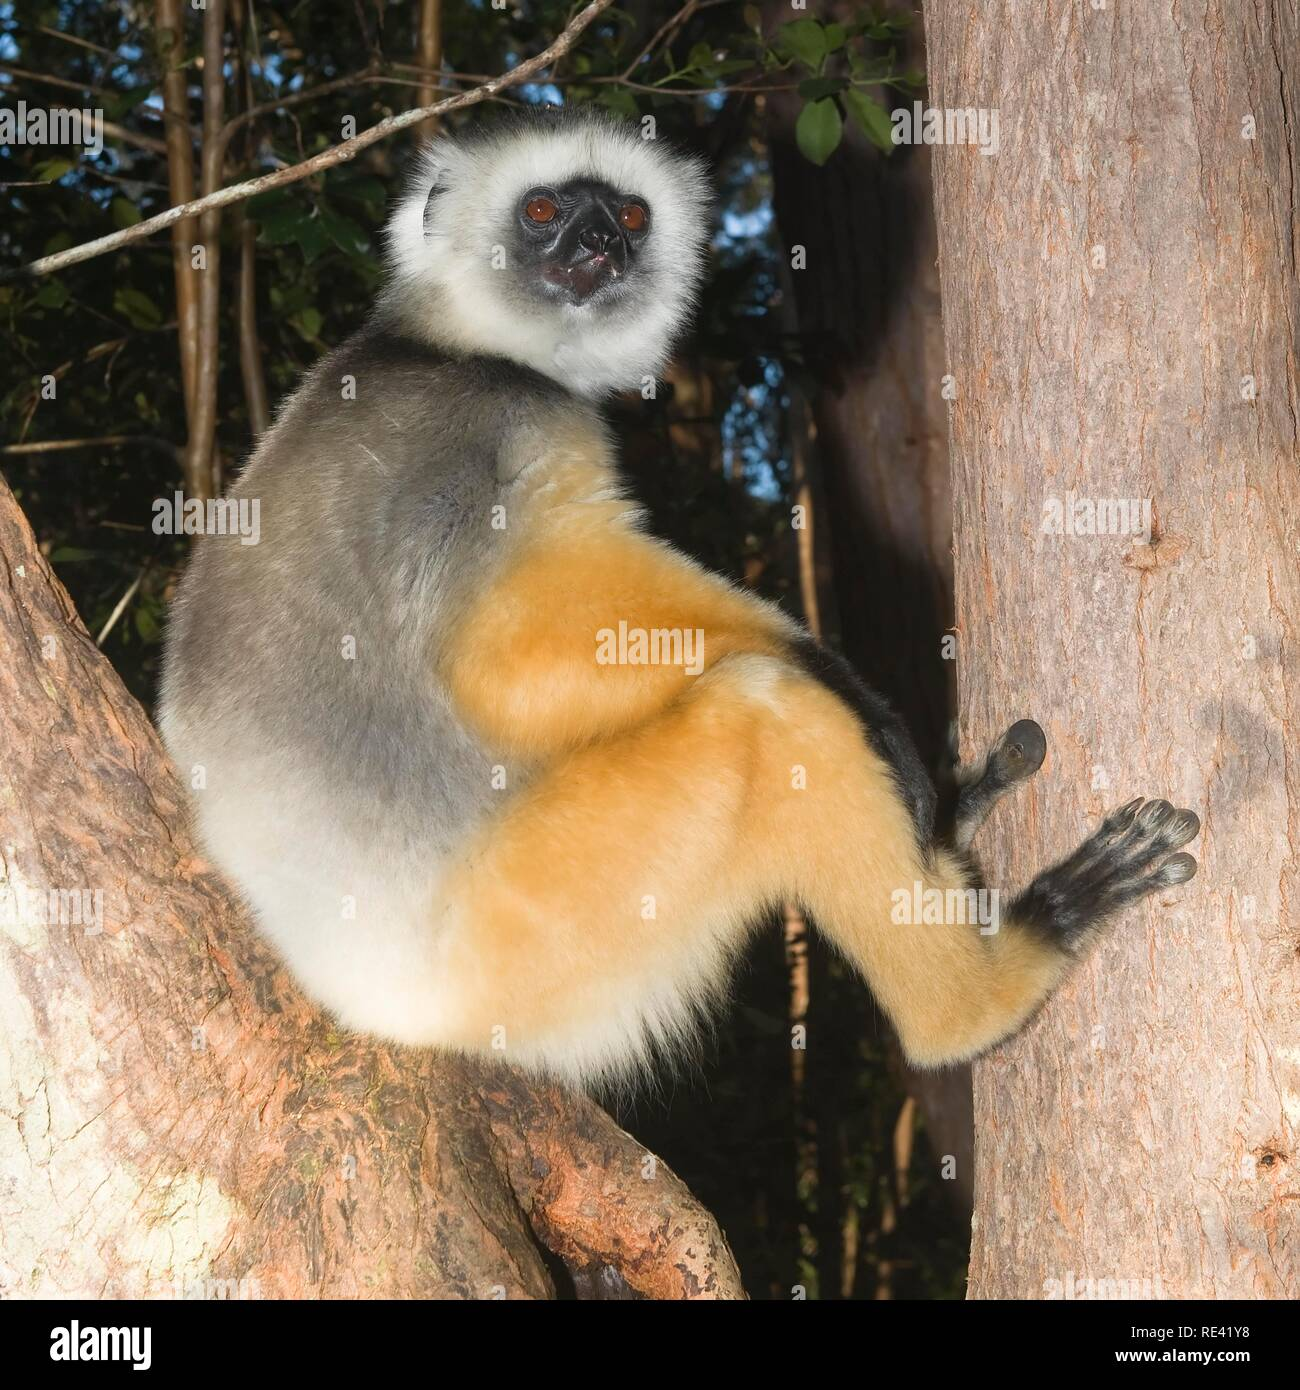 Diademed Sifaka (Propithecus diadema) in a tree, Endangered, IUCN 2008, Perinet Nature Reserve, Madagascar, Africa - Stock Image